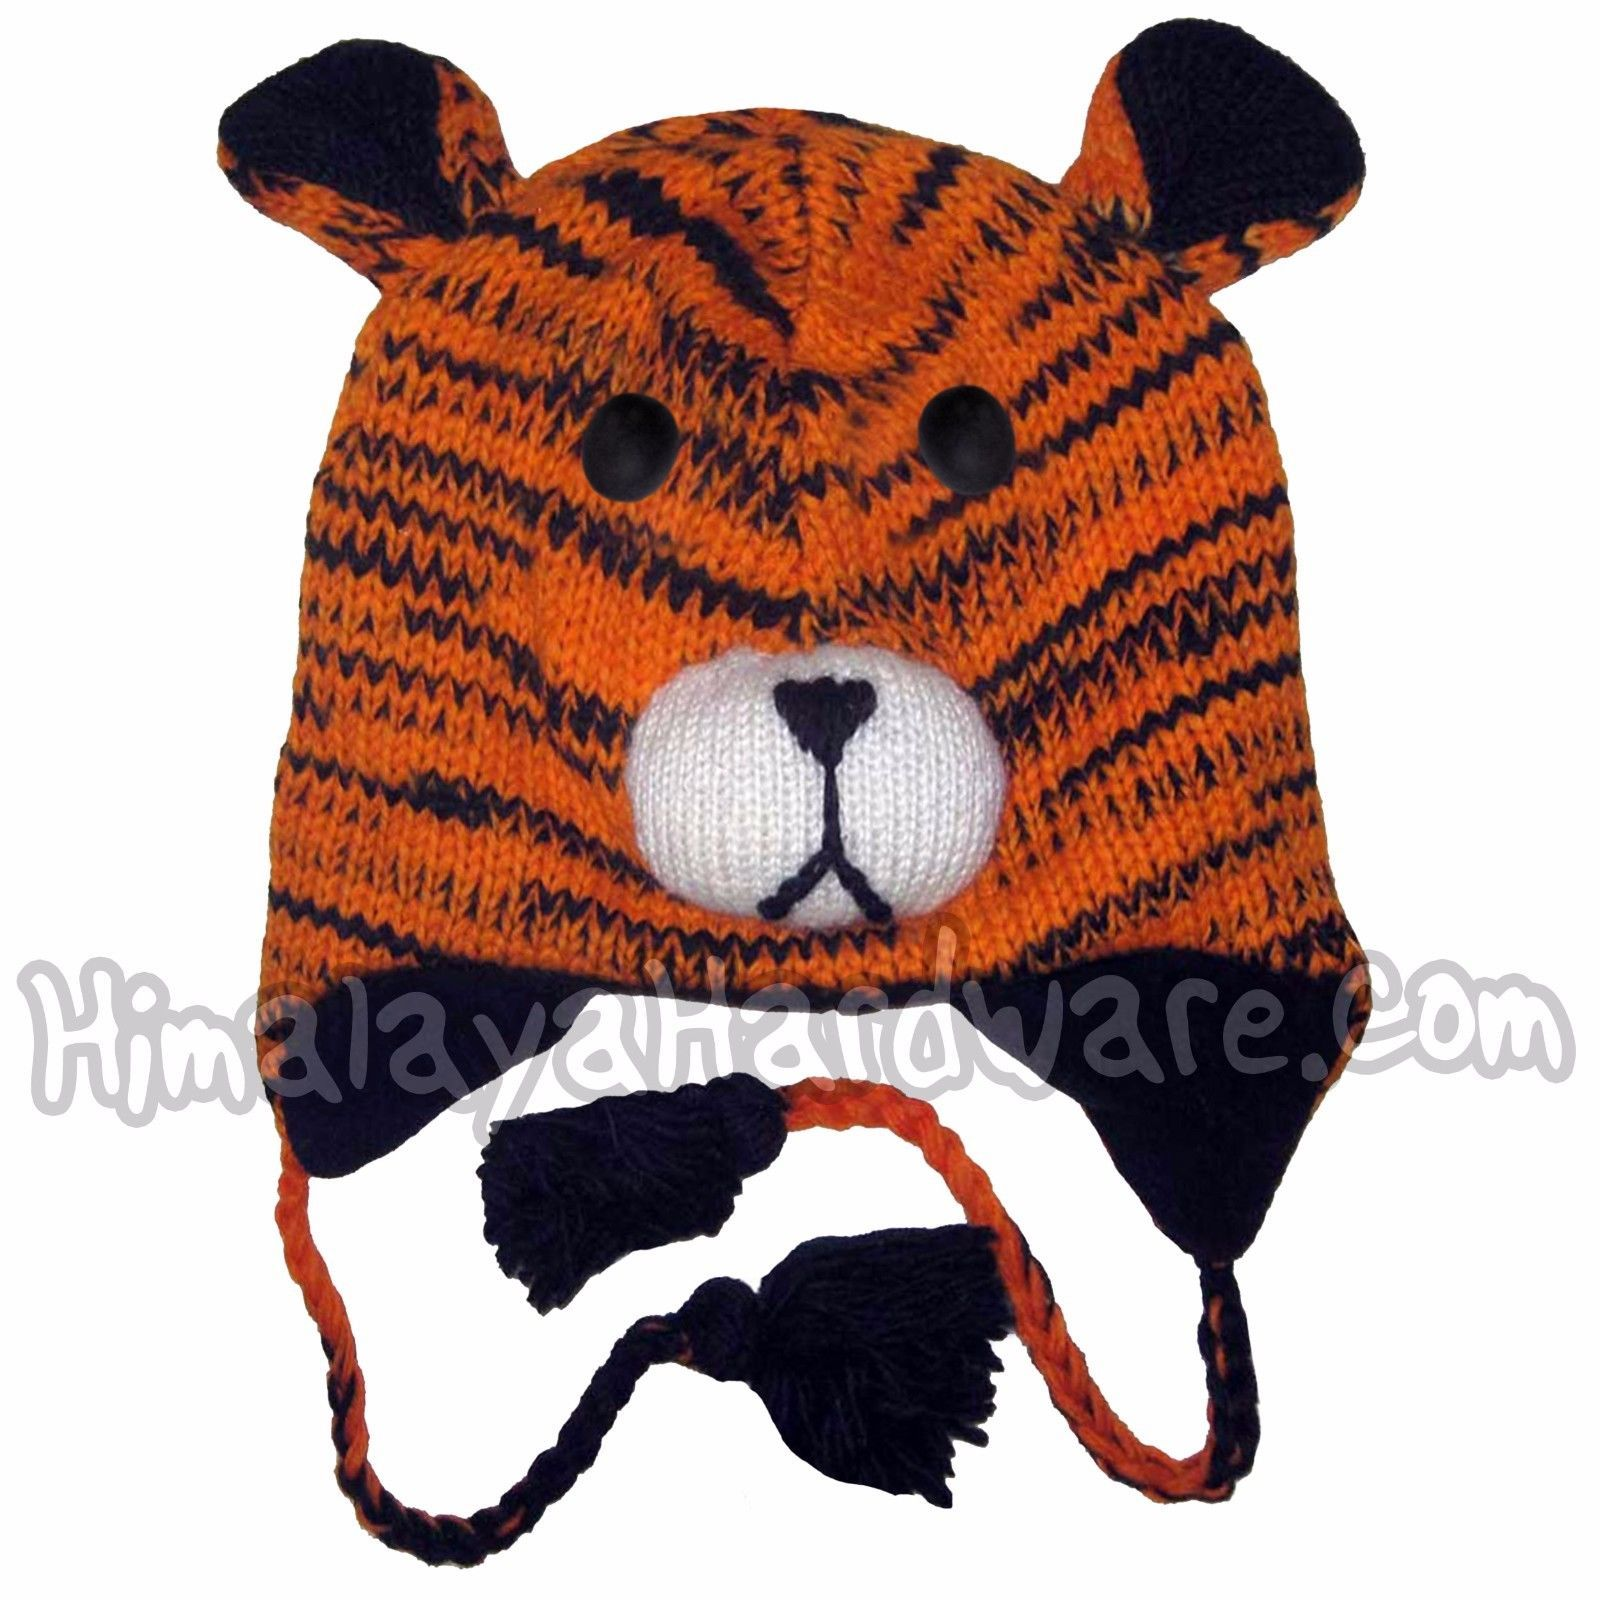 New Animal Face Hat White Black STRIPED MONKEY  Beanie Winter Ski Cap ADULT Gift